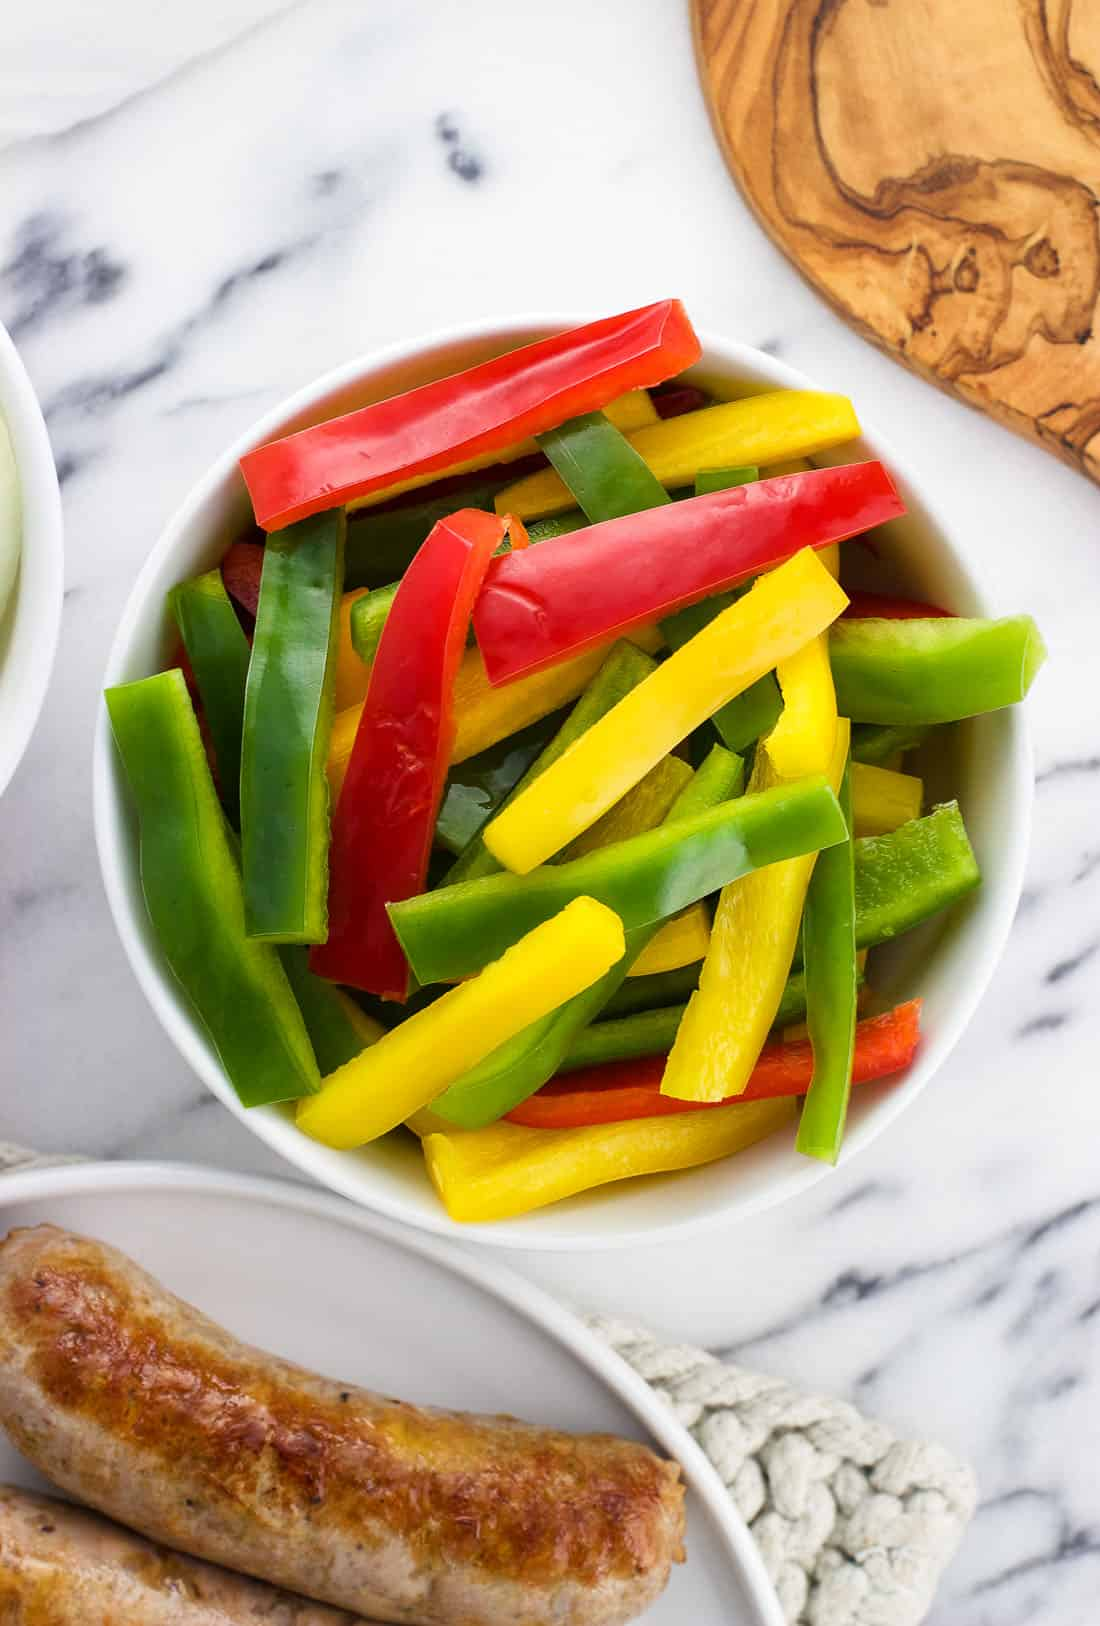 A variety of raw sliced peppers in a bowl next to browned Italian sausages.